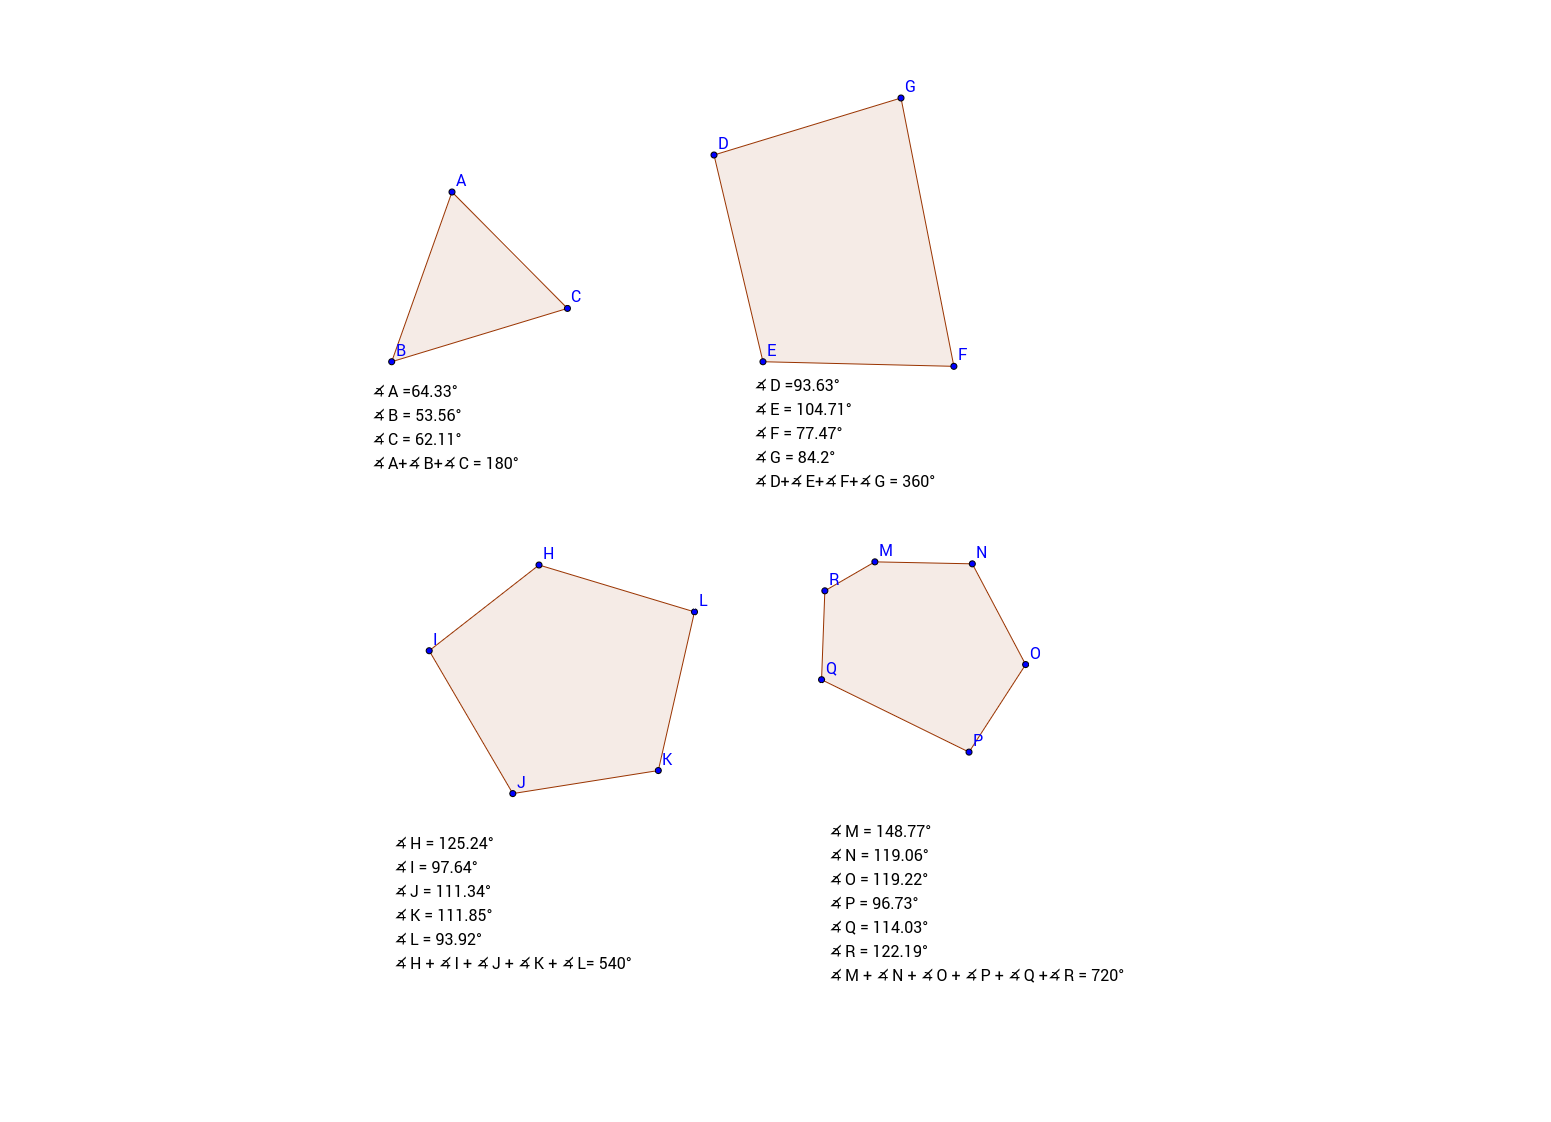 Sum of interior angles of polygons